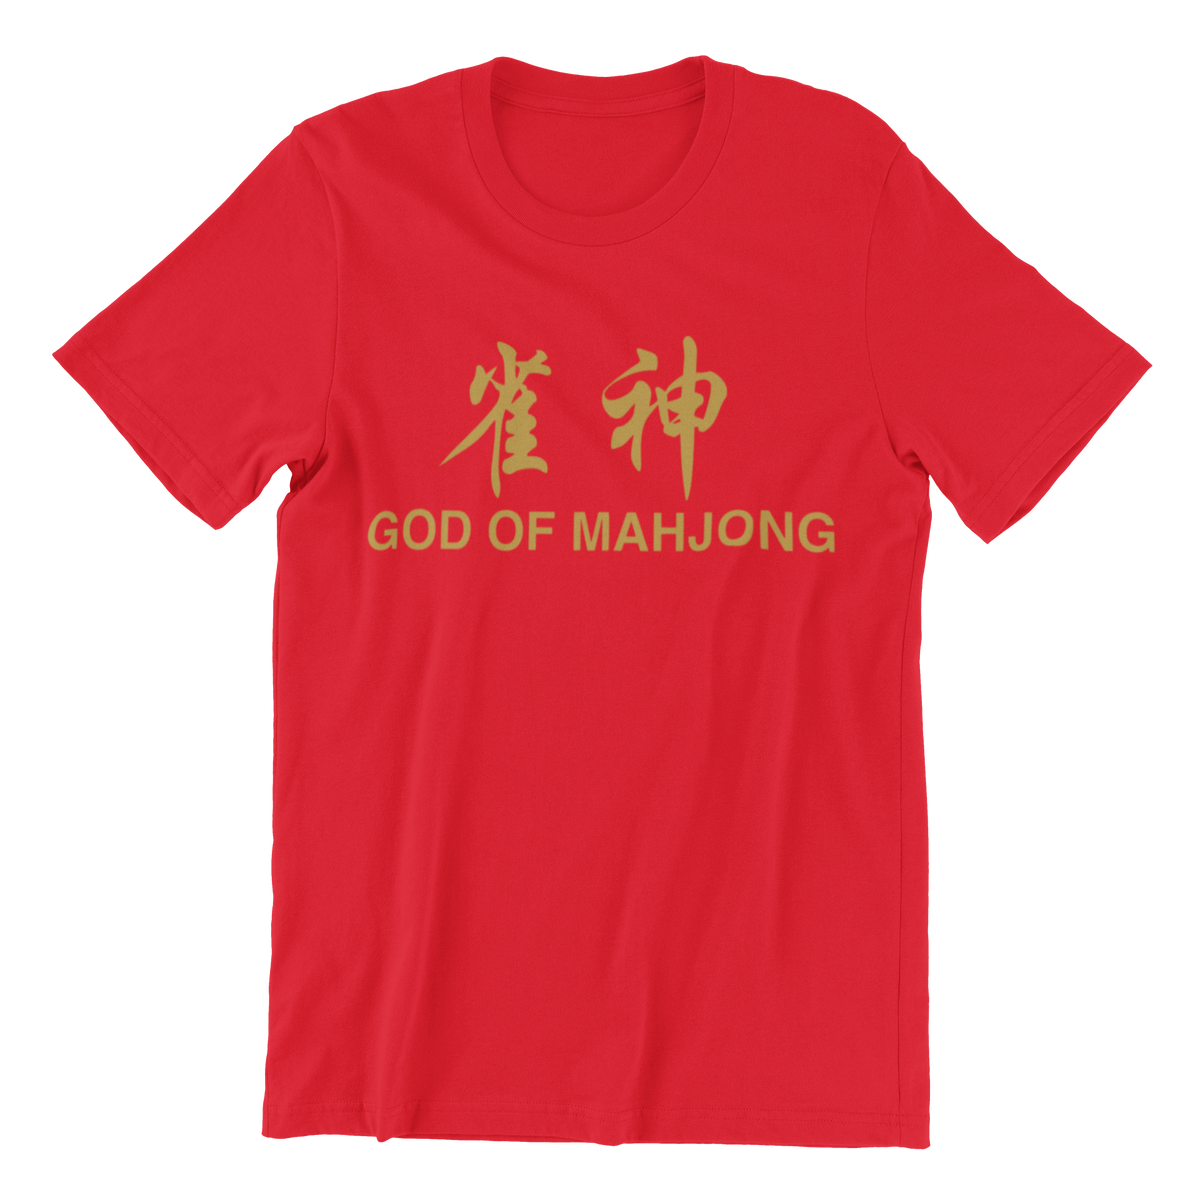 (Limited Gold Edition) God of Mahjong Crew Neck S-Sleeve T-shirt